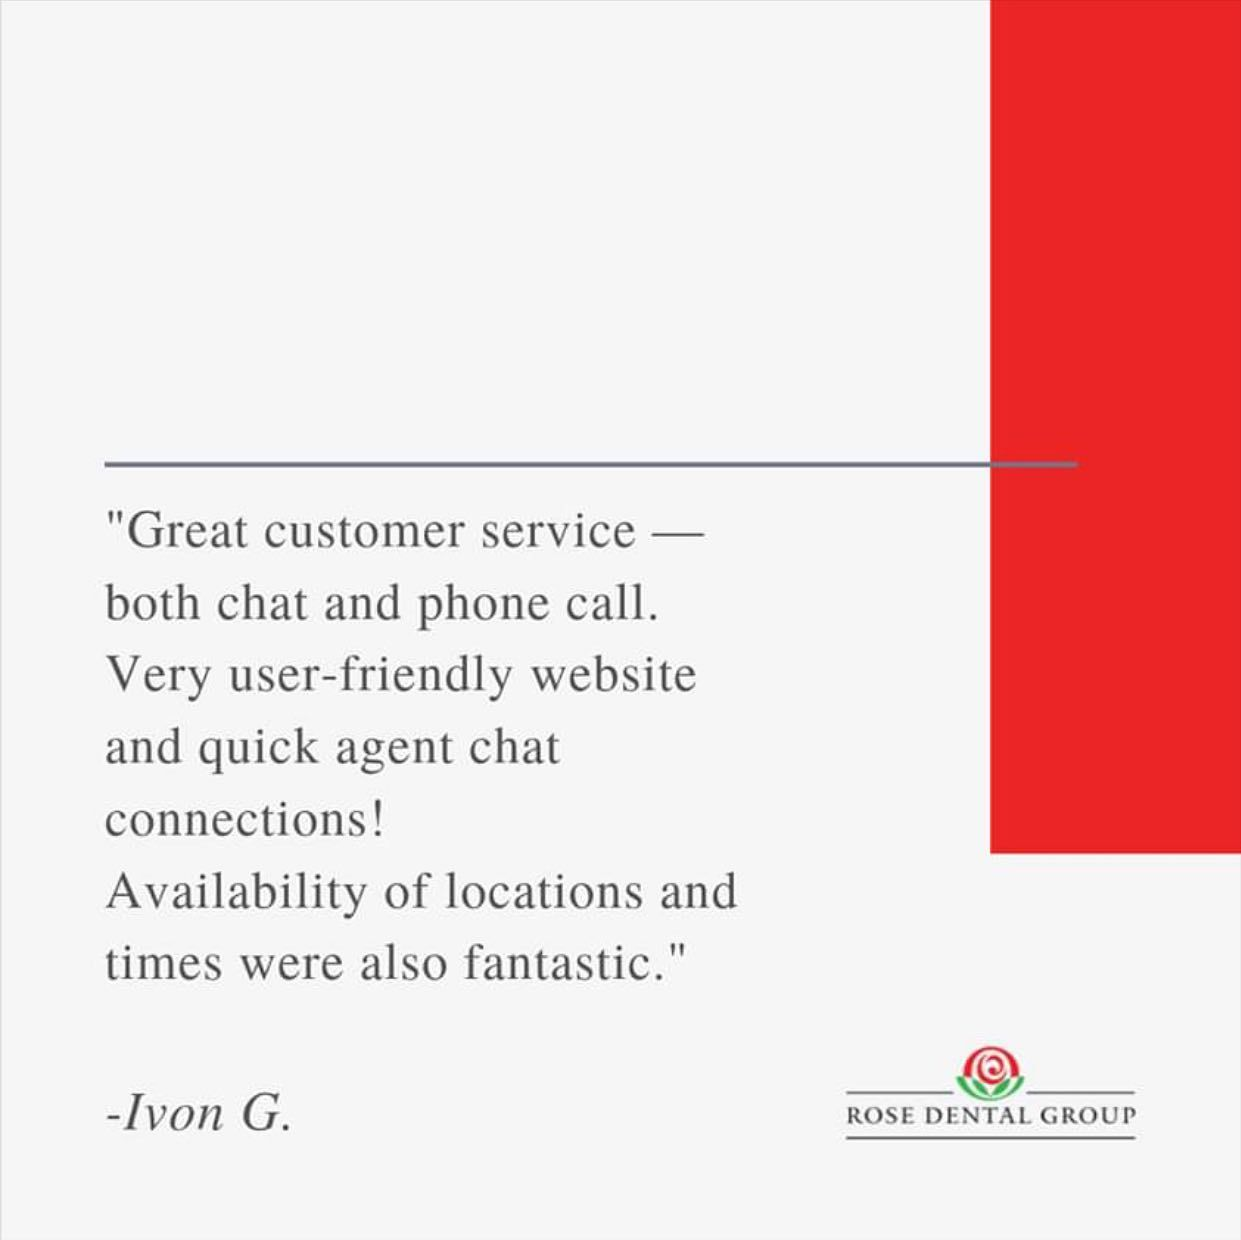 We Love Receiving Feedback From Our Patients Thank You For The Wonderful Review Ivon In 2020 Rose Dental Dental Group Patient